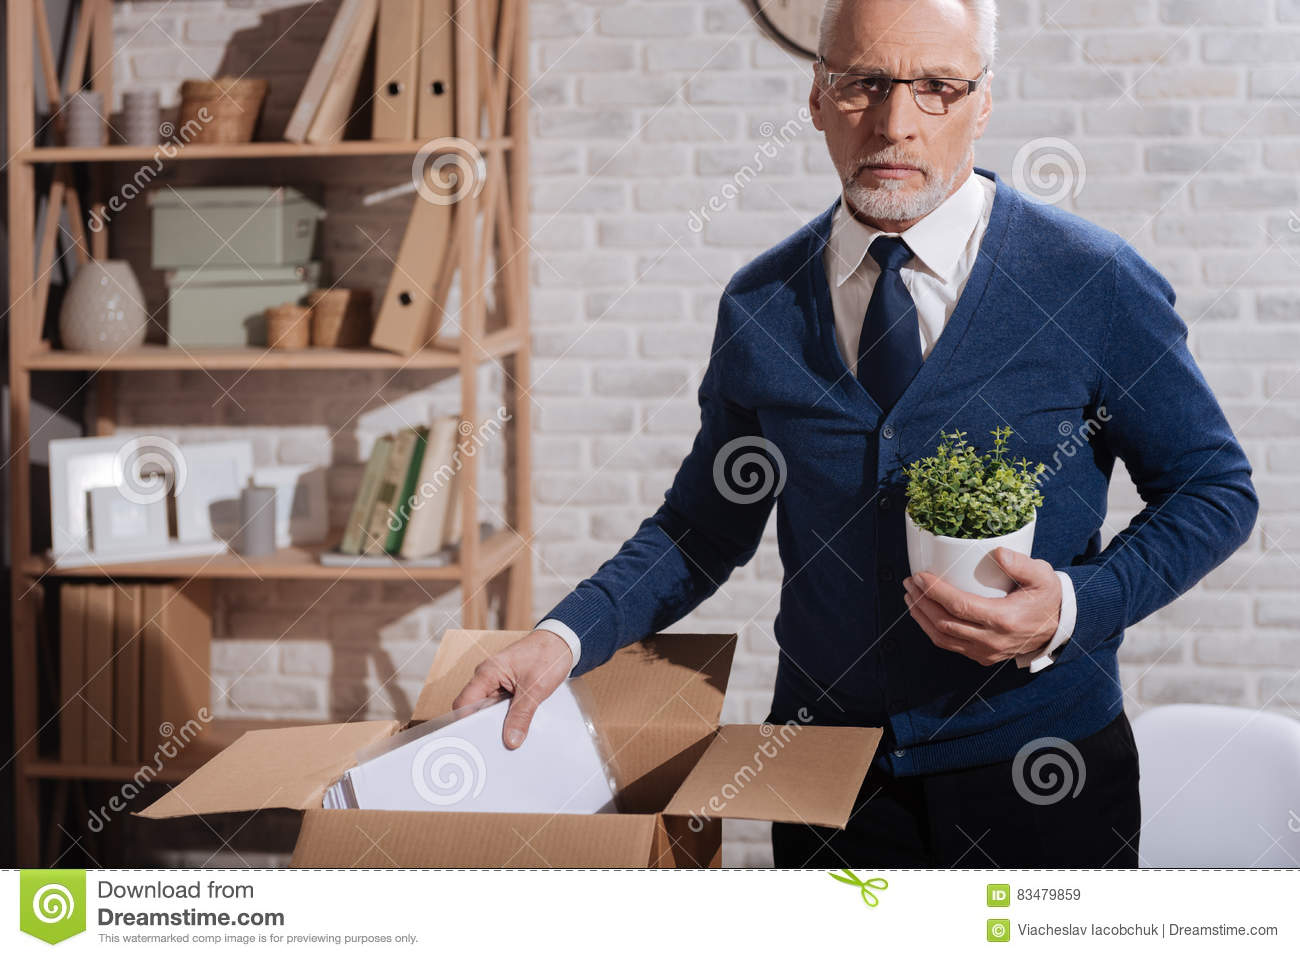 Hopeless professional clearing his workplace